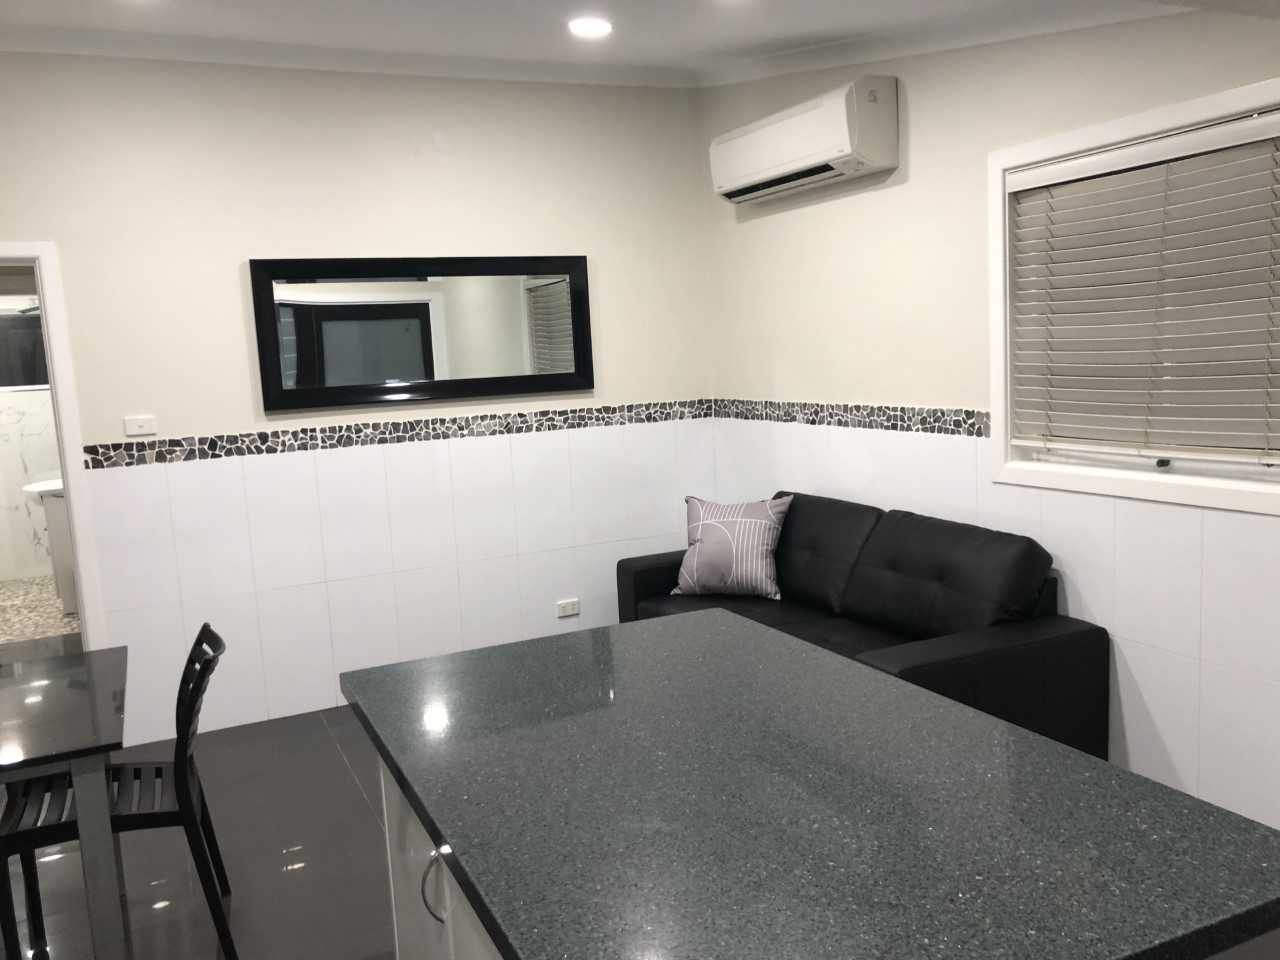 Callaghan Cottages - https://www.newcastleapartments.com.au/wp-content/uploads/2020/02/table.jpg